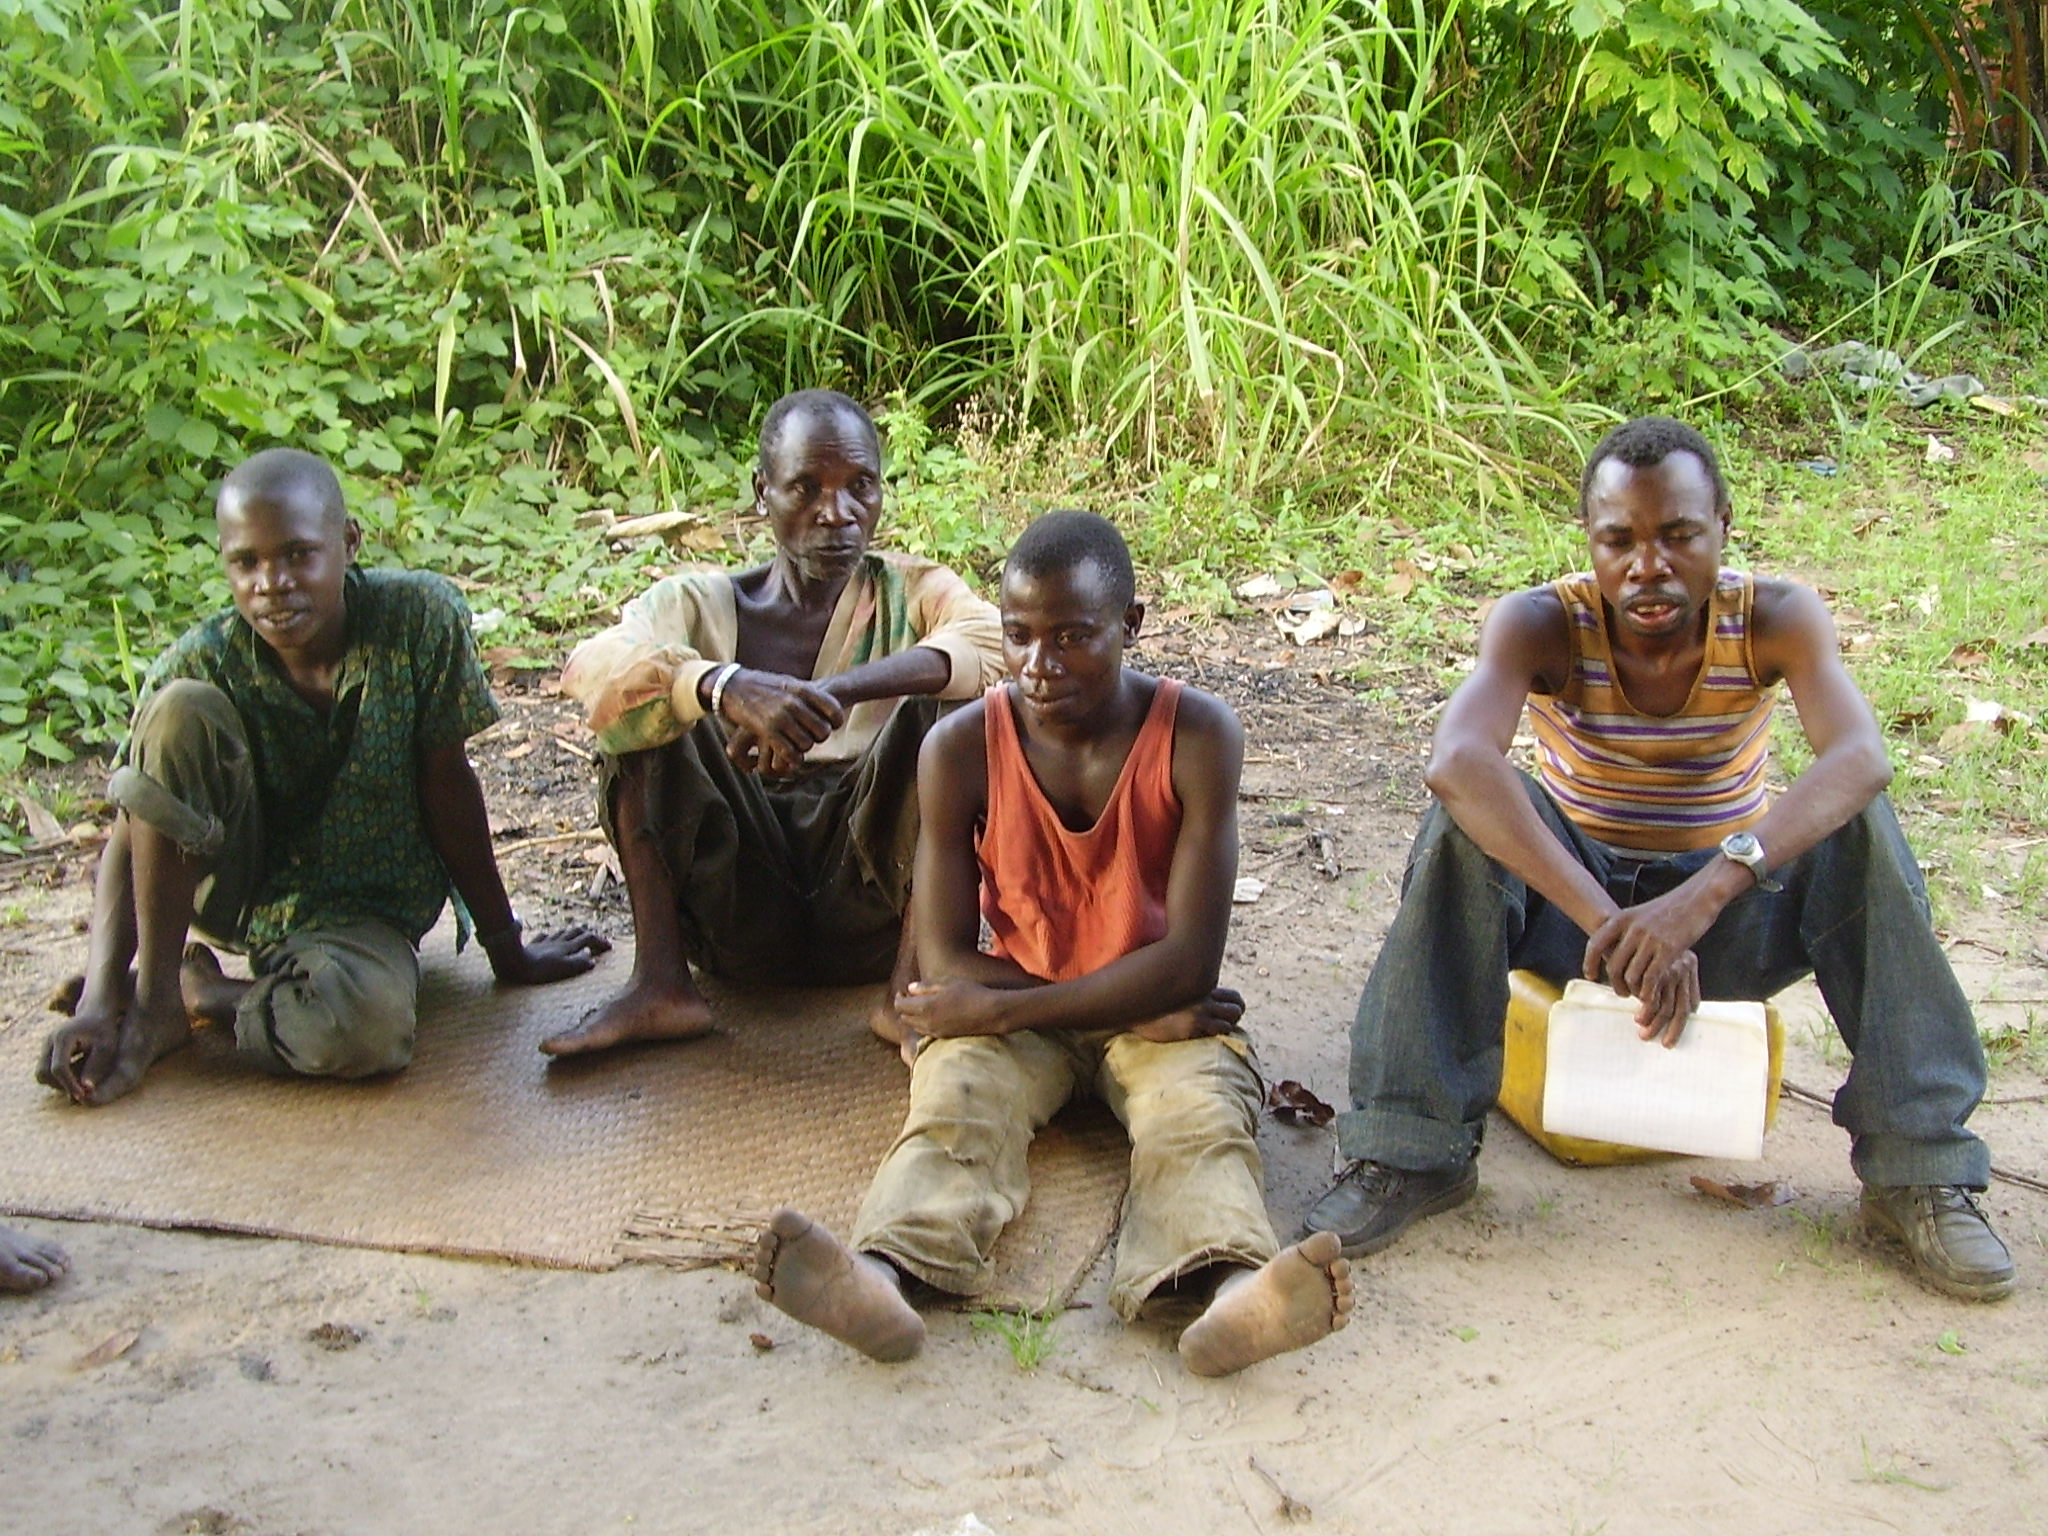 Young Baka men resting after a day of working on a project in a village in Gamboma district, Congo, March 2008.